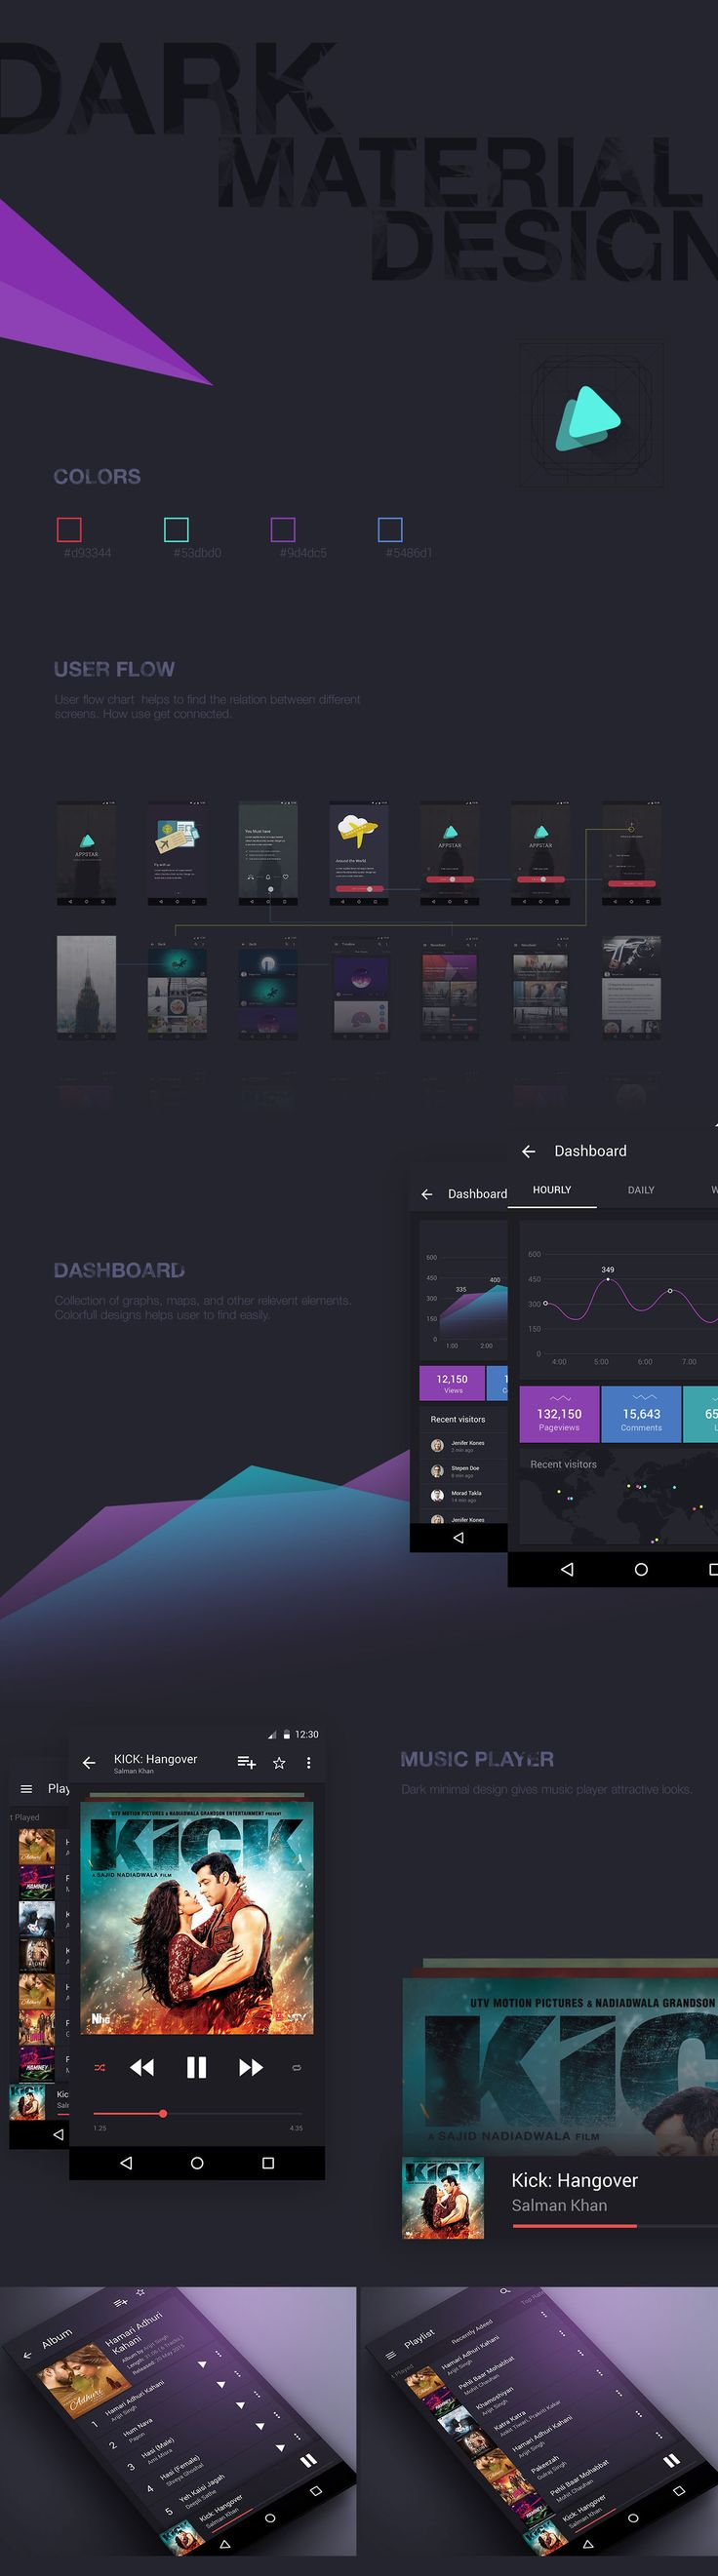 Dark Material UI Design on Behance